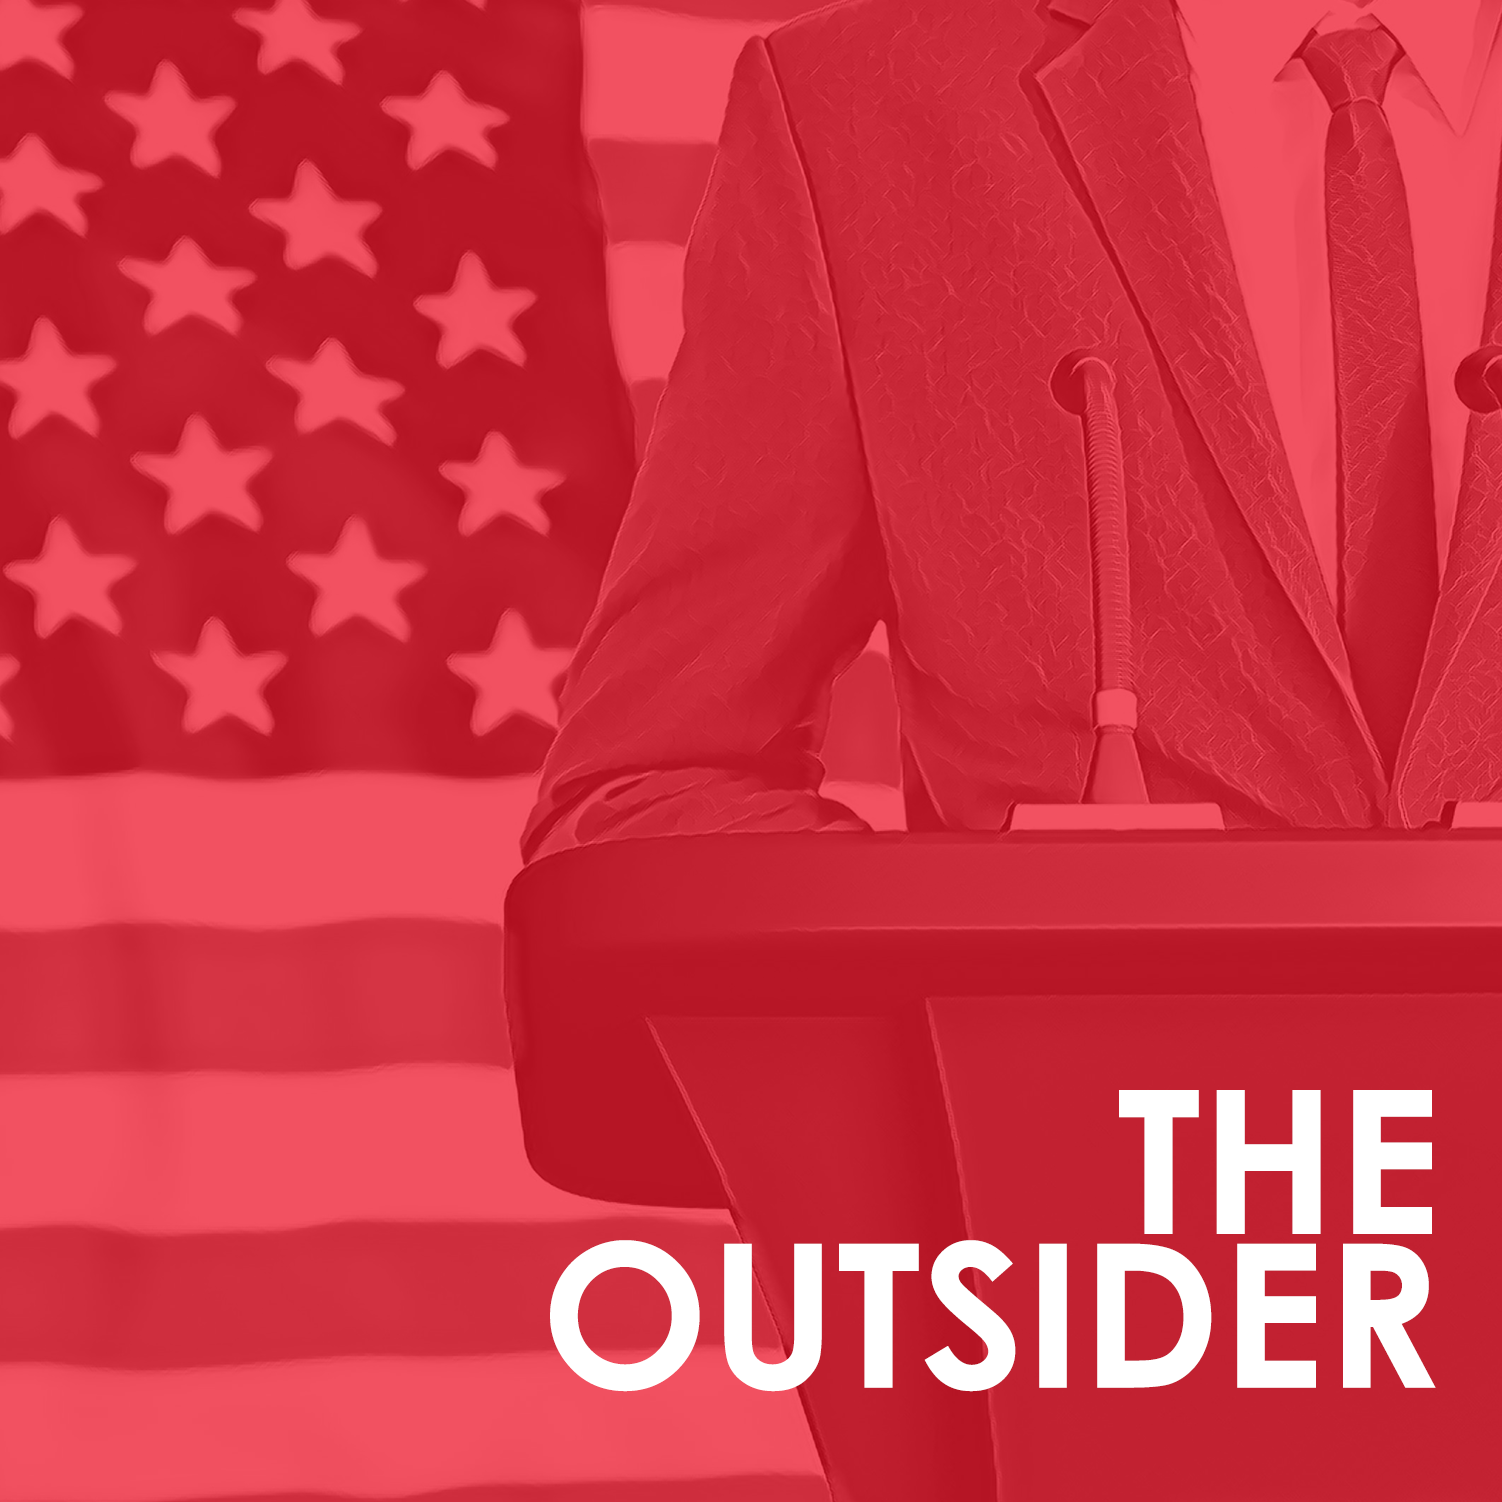 Postponed new dates TBD:  The Outsider - A COMEDY By Paul Slade Smith